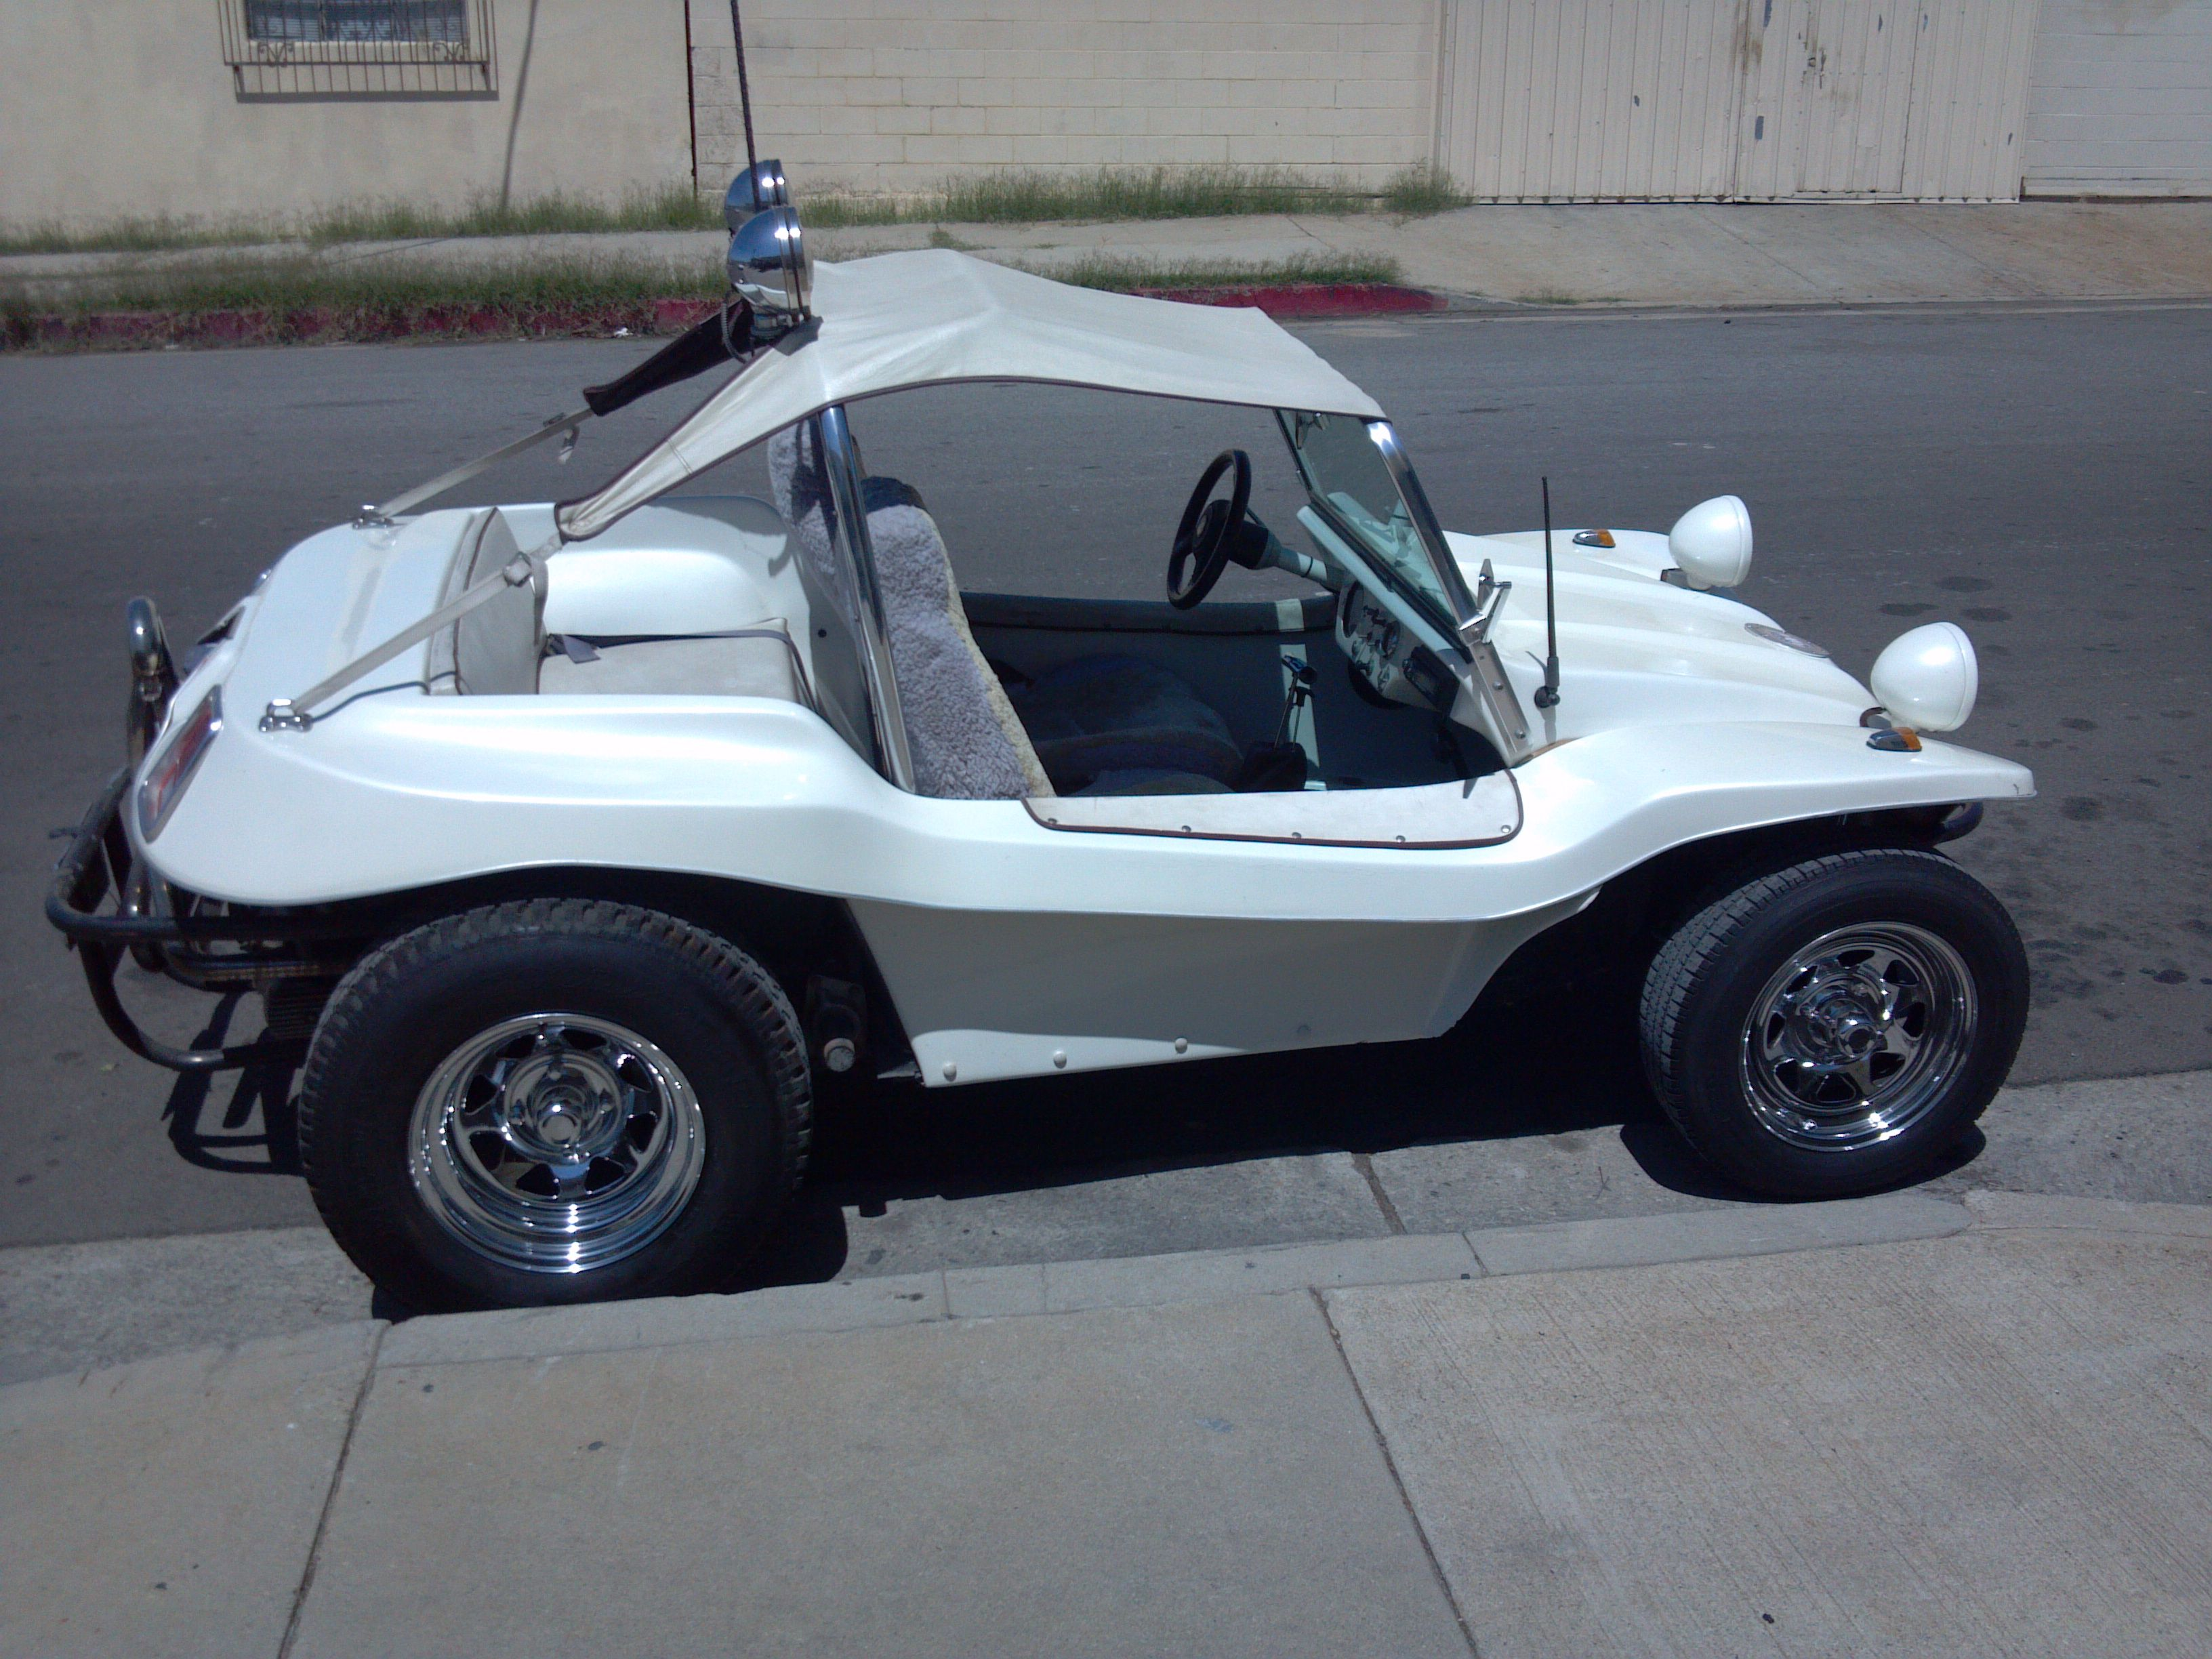 Dune Buggy Basic 1960 S Fibergl Body And Vw Engine This Is A Formula For Lot Of Fun